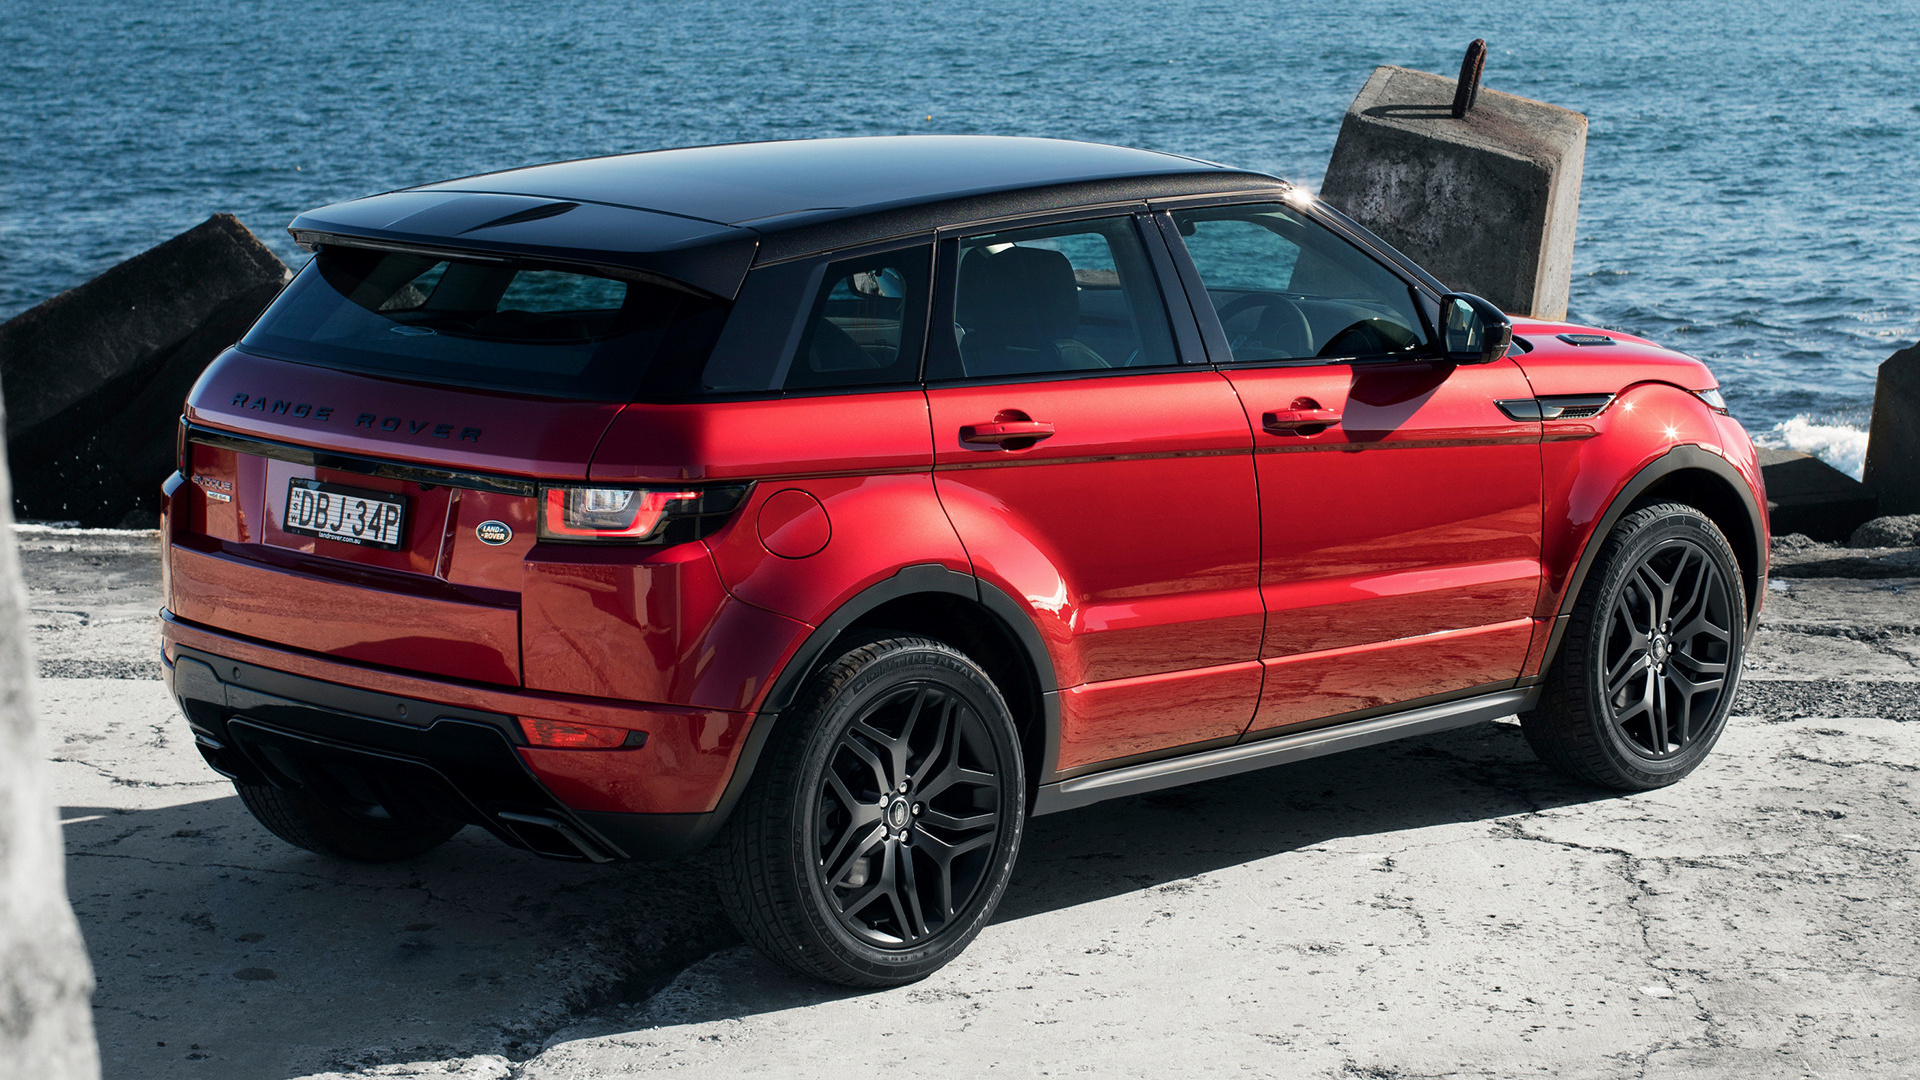 2015 Range Rover Evoque HSE Dynamic (AU) - Wallpapers and ...